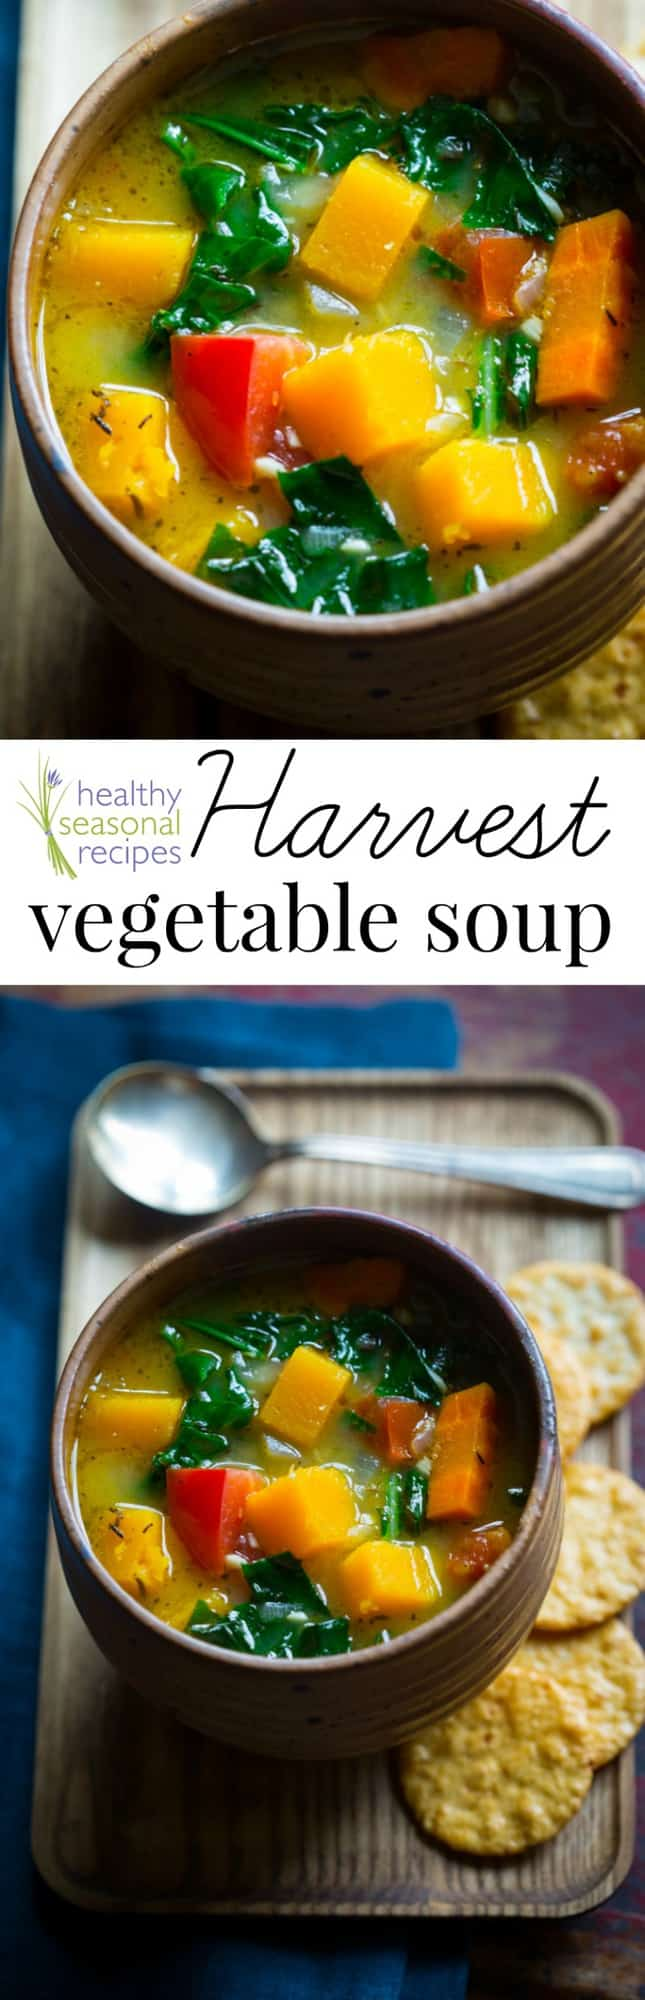 A bowl of soup and a spoon, with Vegetable soup and Butternut Squash